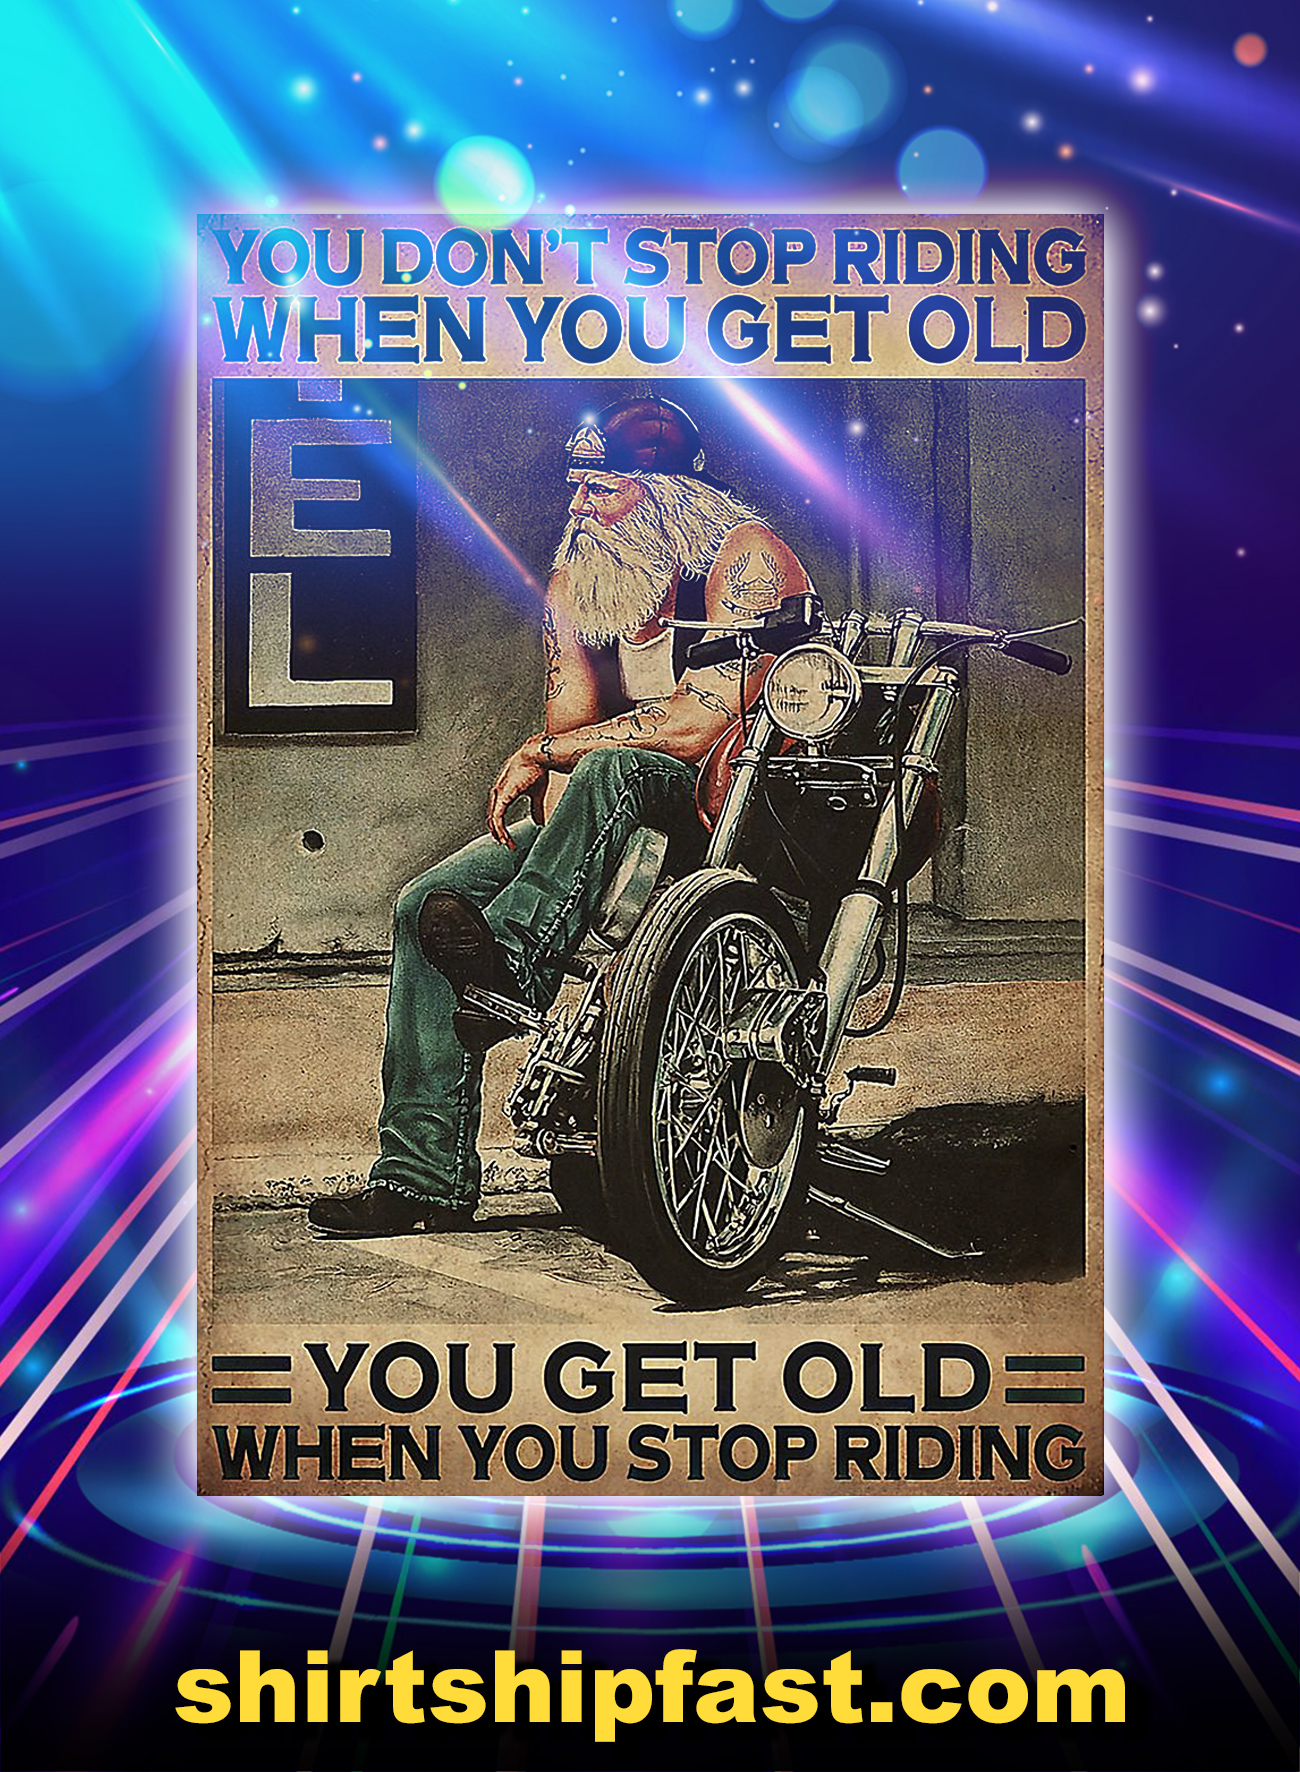 Old biker Motorcycle you don't stop riding poster - A4